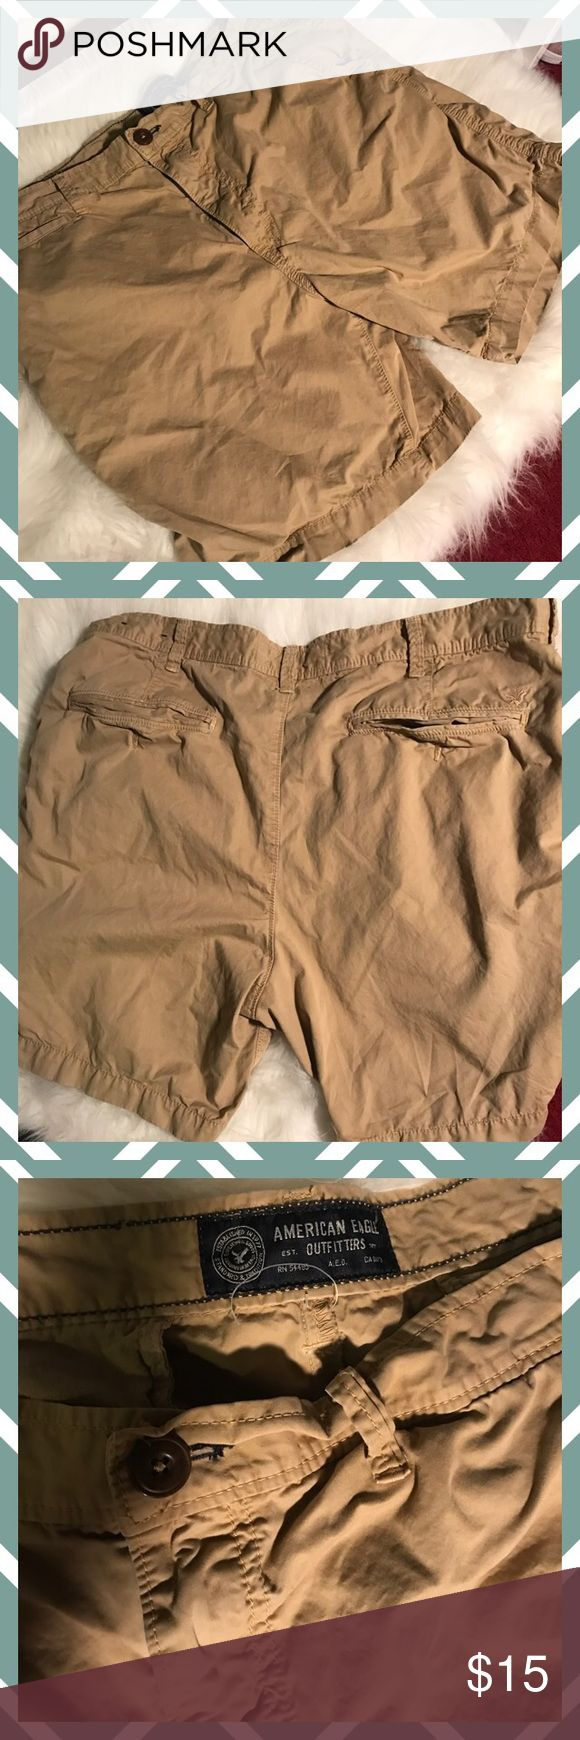 Mens AE tan shorts Men's shorts, good condition. No rips or tears. Priced to sell. American Eagle Outfitters Shorts